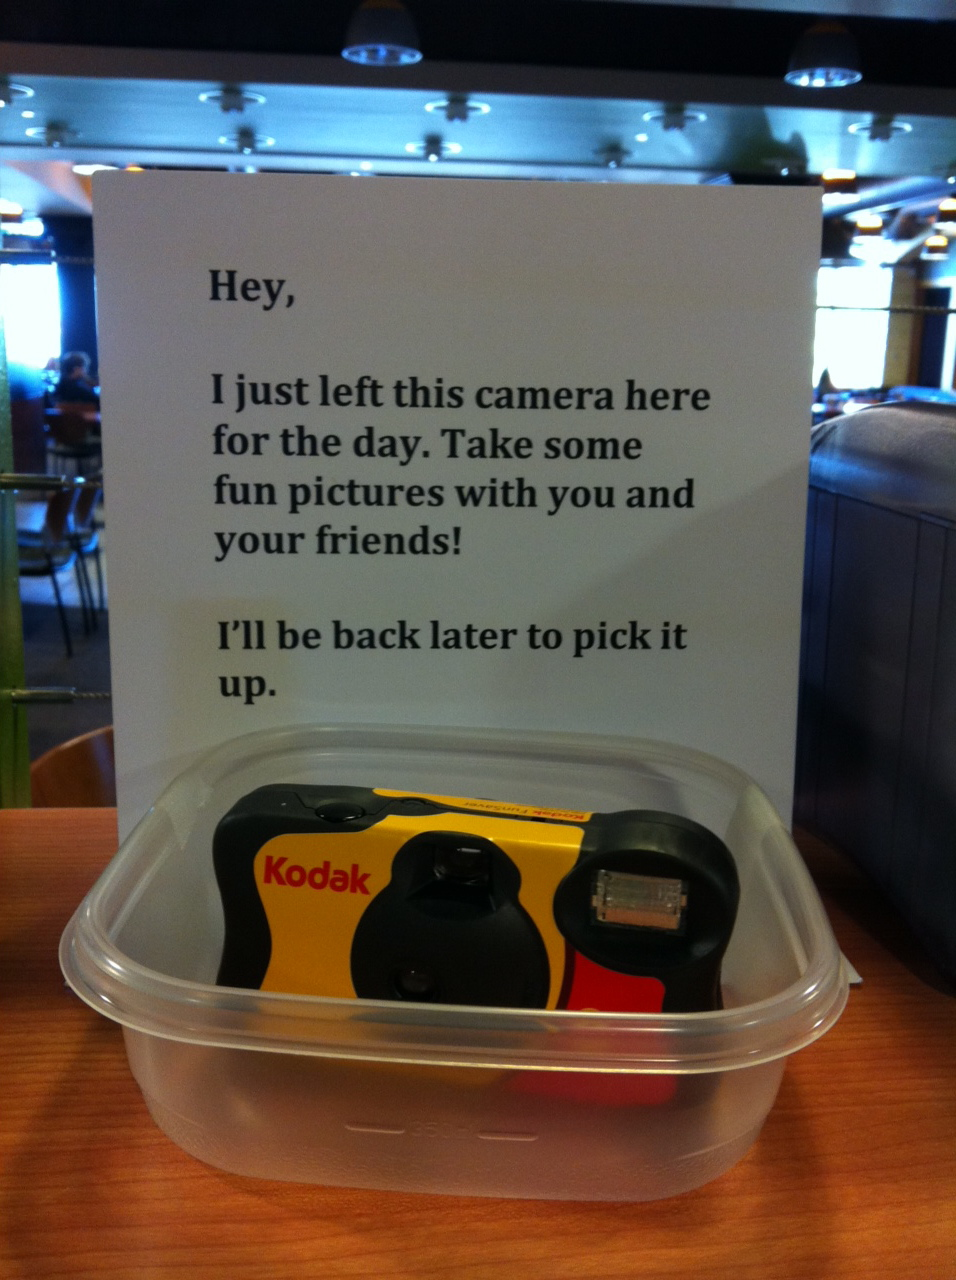 One of the disposable cameras distributed on campus